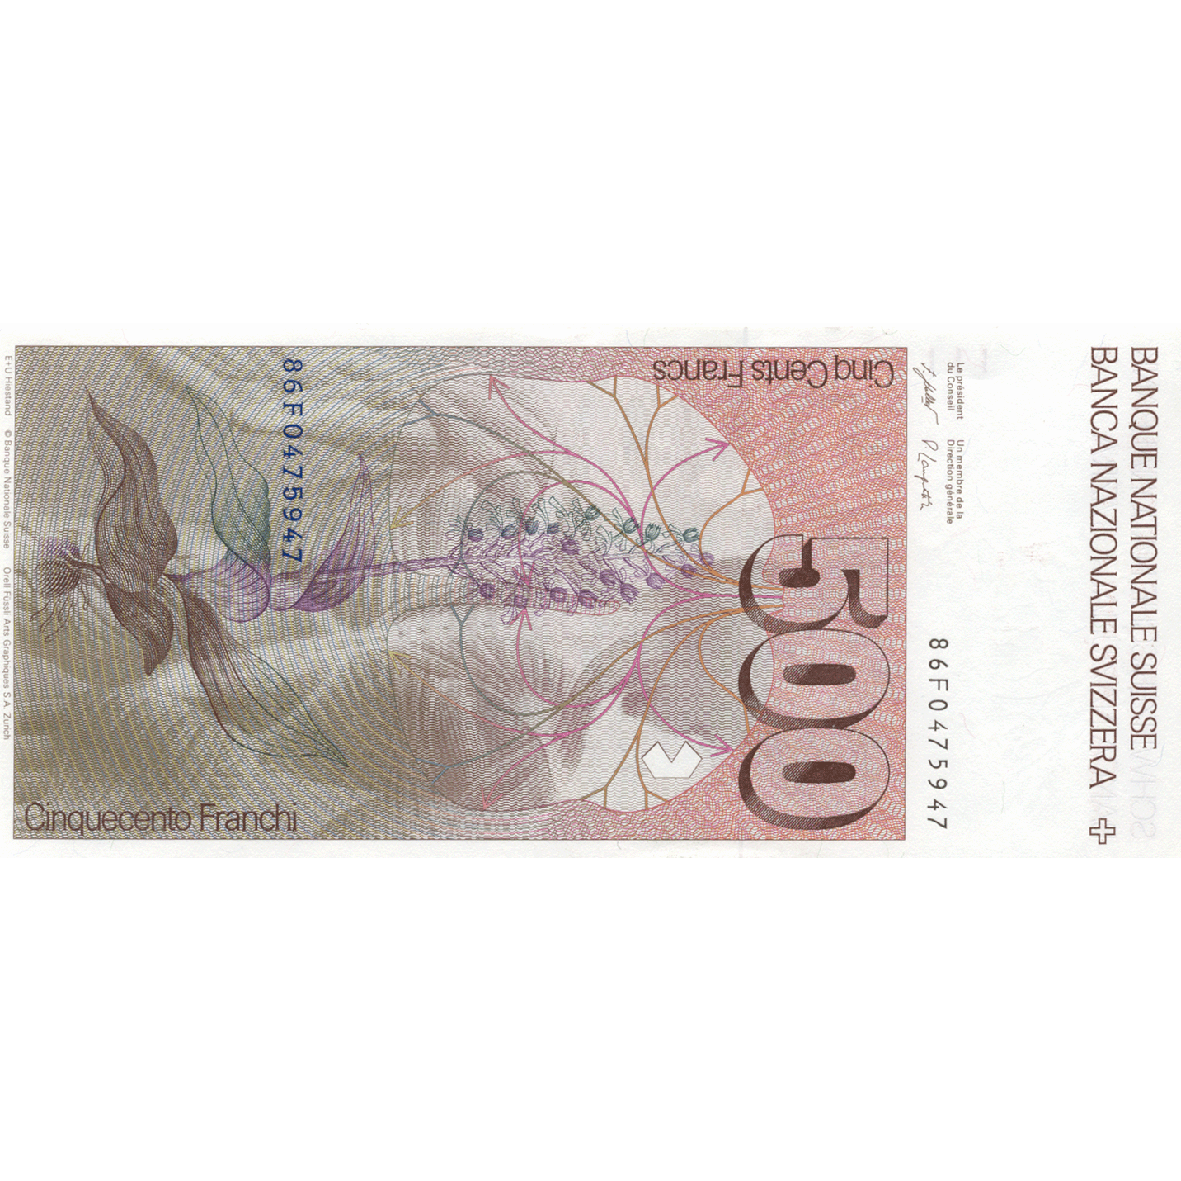 Swiss Confederation, 500 Francs (6th Banknote Series, in Circulation 1976-2000) (reverse)